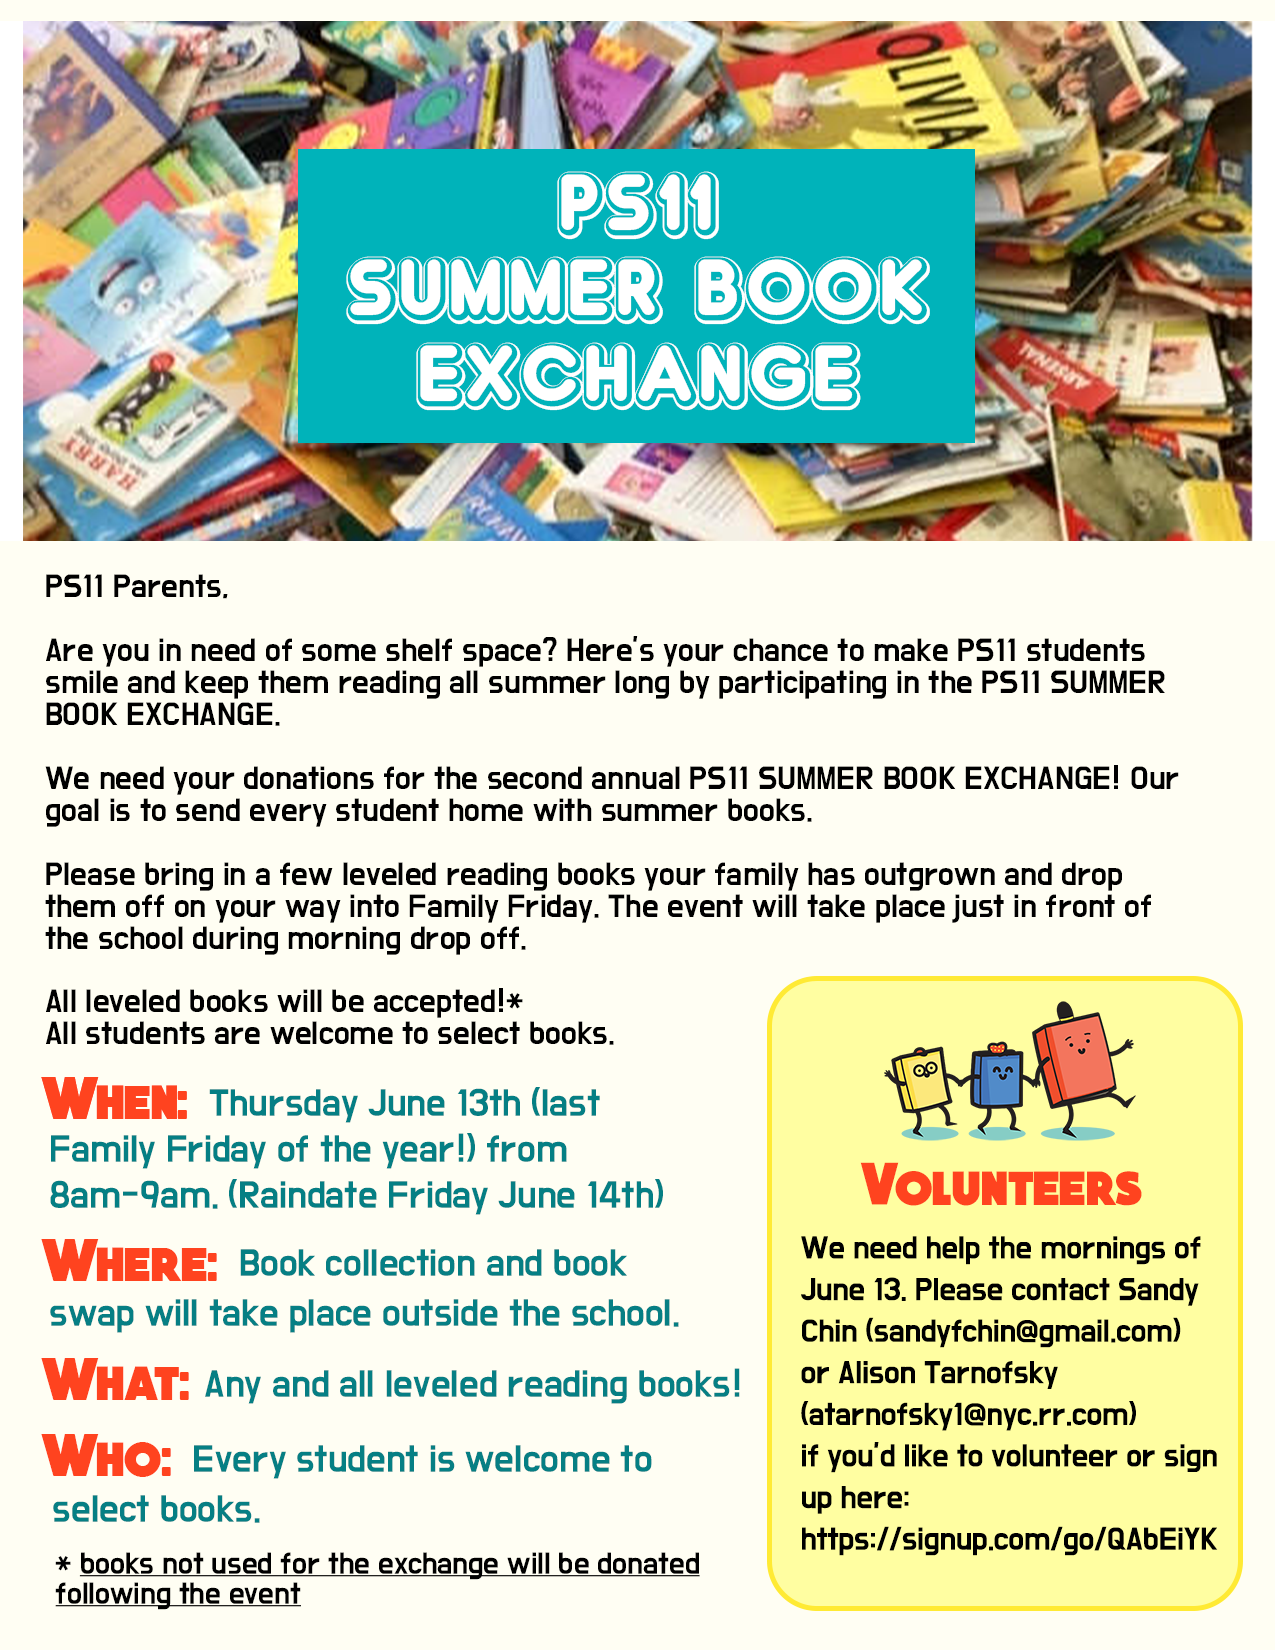 Parents:  Are you in need of some shelf space?  Here's your chance to make PS11 students smile and keep them reading all summer long by participating in the PS11 Summer Book Exchange.  We need your donations for the second annual PS11 Summer Book Exchange!  Our goal is to send every student home with summer books.   Please bring in a few leveled reading books your family has outgrown and drop them off on your way into Family Friday.  The event will take place just in front of the school during morning drop off.    All leveled books will be accepted!* . All students are welcome to select books.  WHEN: Thursday June 13th (lst Family Friday of the year!) from 8am-9am (raindate Friday June 14th)  WHERE:  Book collection and book swap will take place outside the school  WHAT:  Any and all leveled reading books!  WHO:  Every student is welcome to select books   * books not used for the exchange will be donated following the event  Volunteers:  We need help the morning of June 13.  Please contact Sandy Chin (sandyfchin@gmail.com) or Alison Tarnofsky (atarnofsky1@nyc.rr.com) . If you'd like to volunteer, sign up here:  https://signup.com/go/QAbEiYK 10 minutes before, as email 10 minutes before Organizer: PS11 Calendar PS11 Calendar